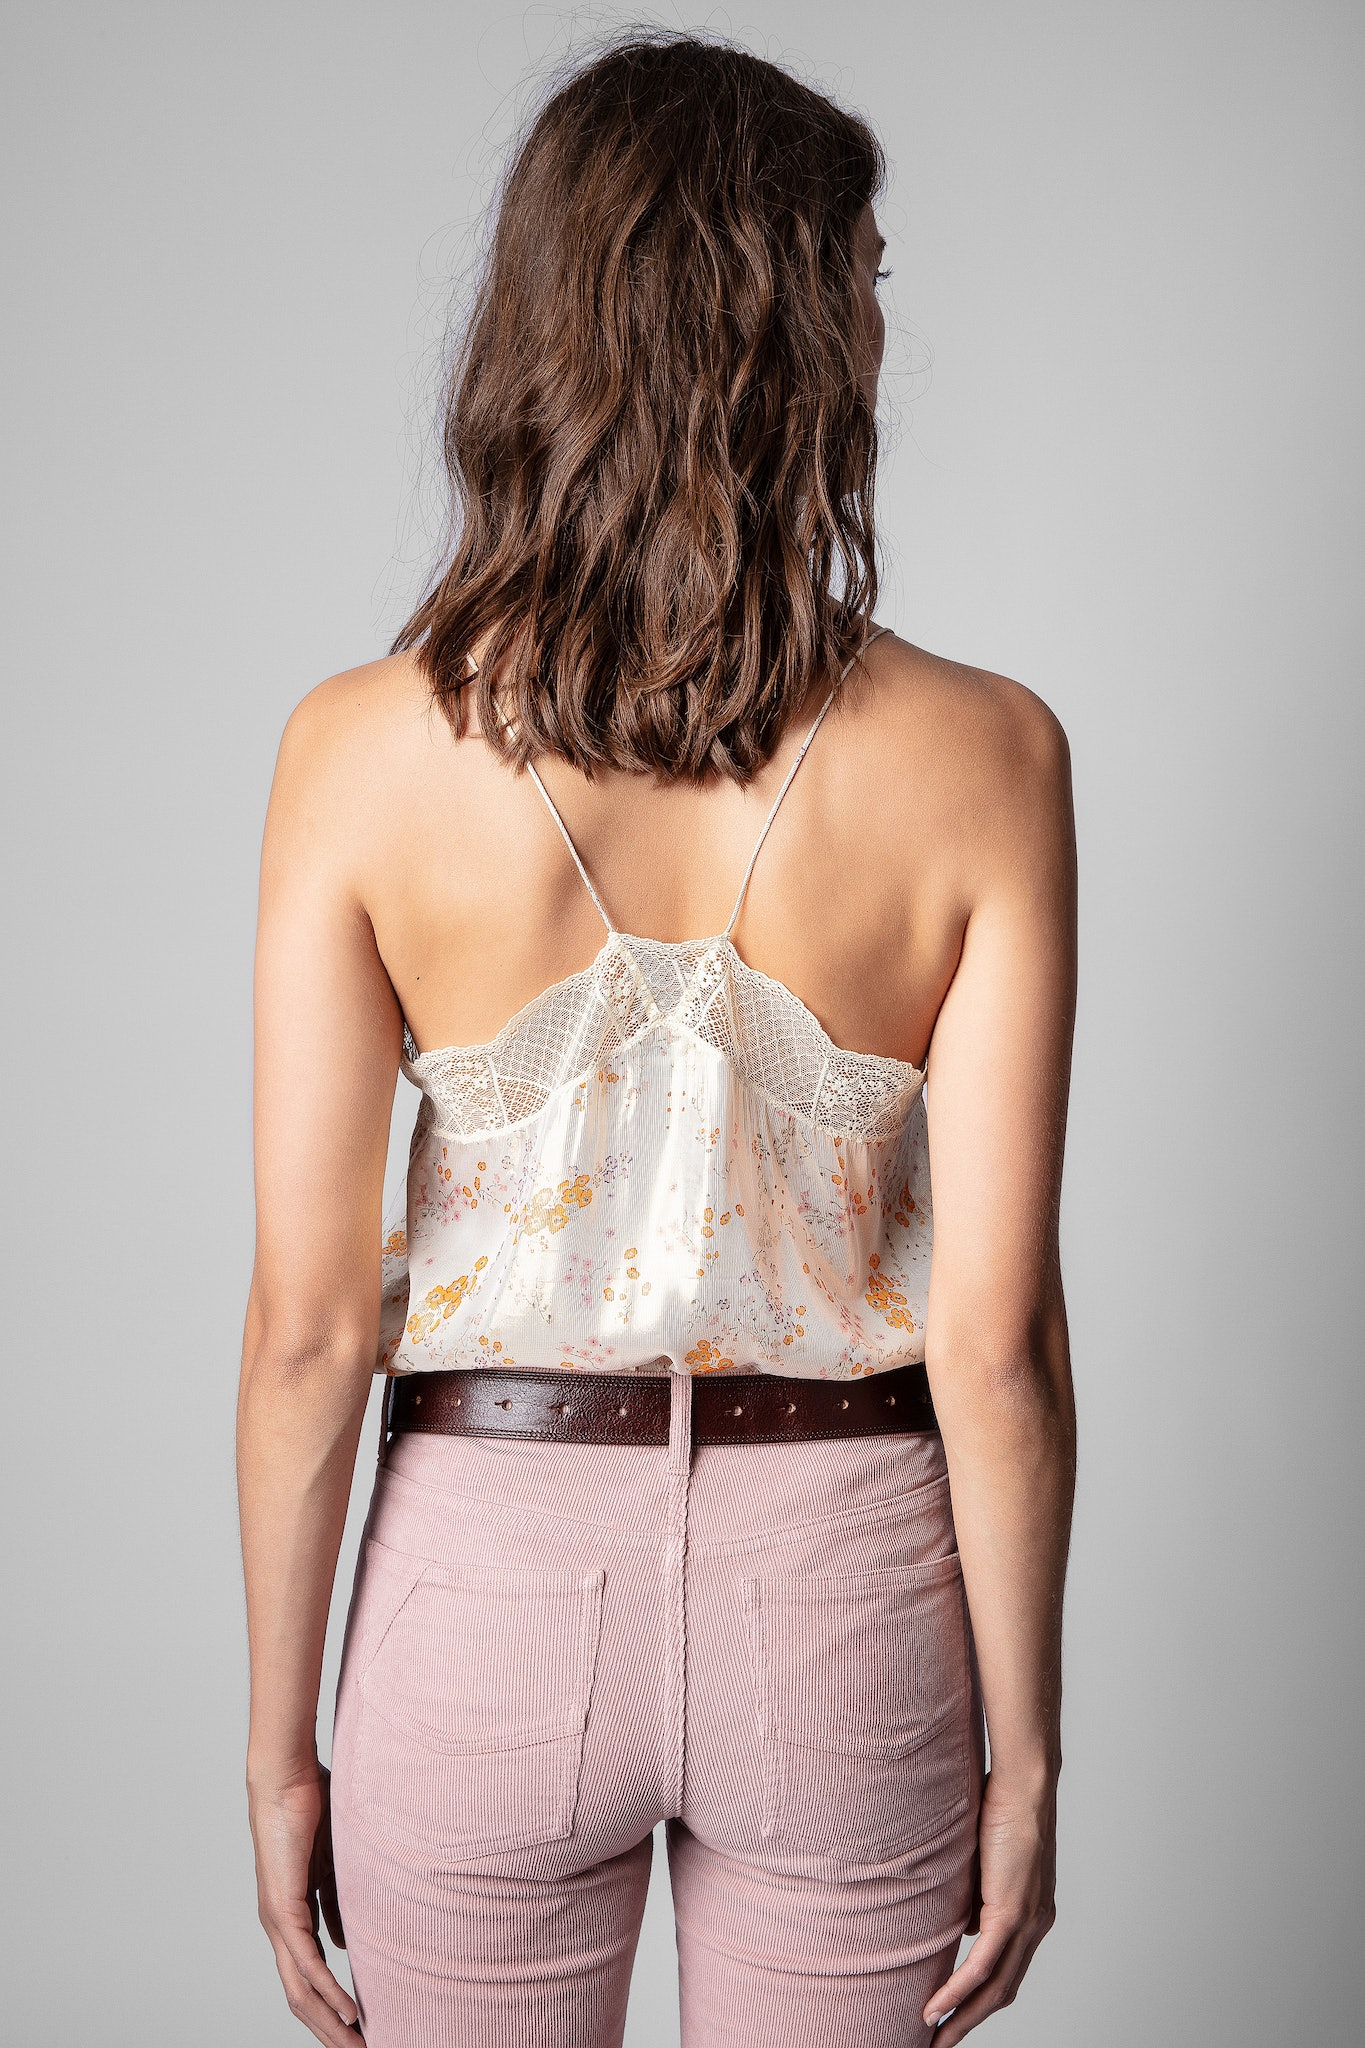 Christy Lame Camisole